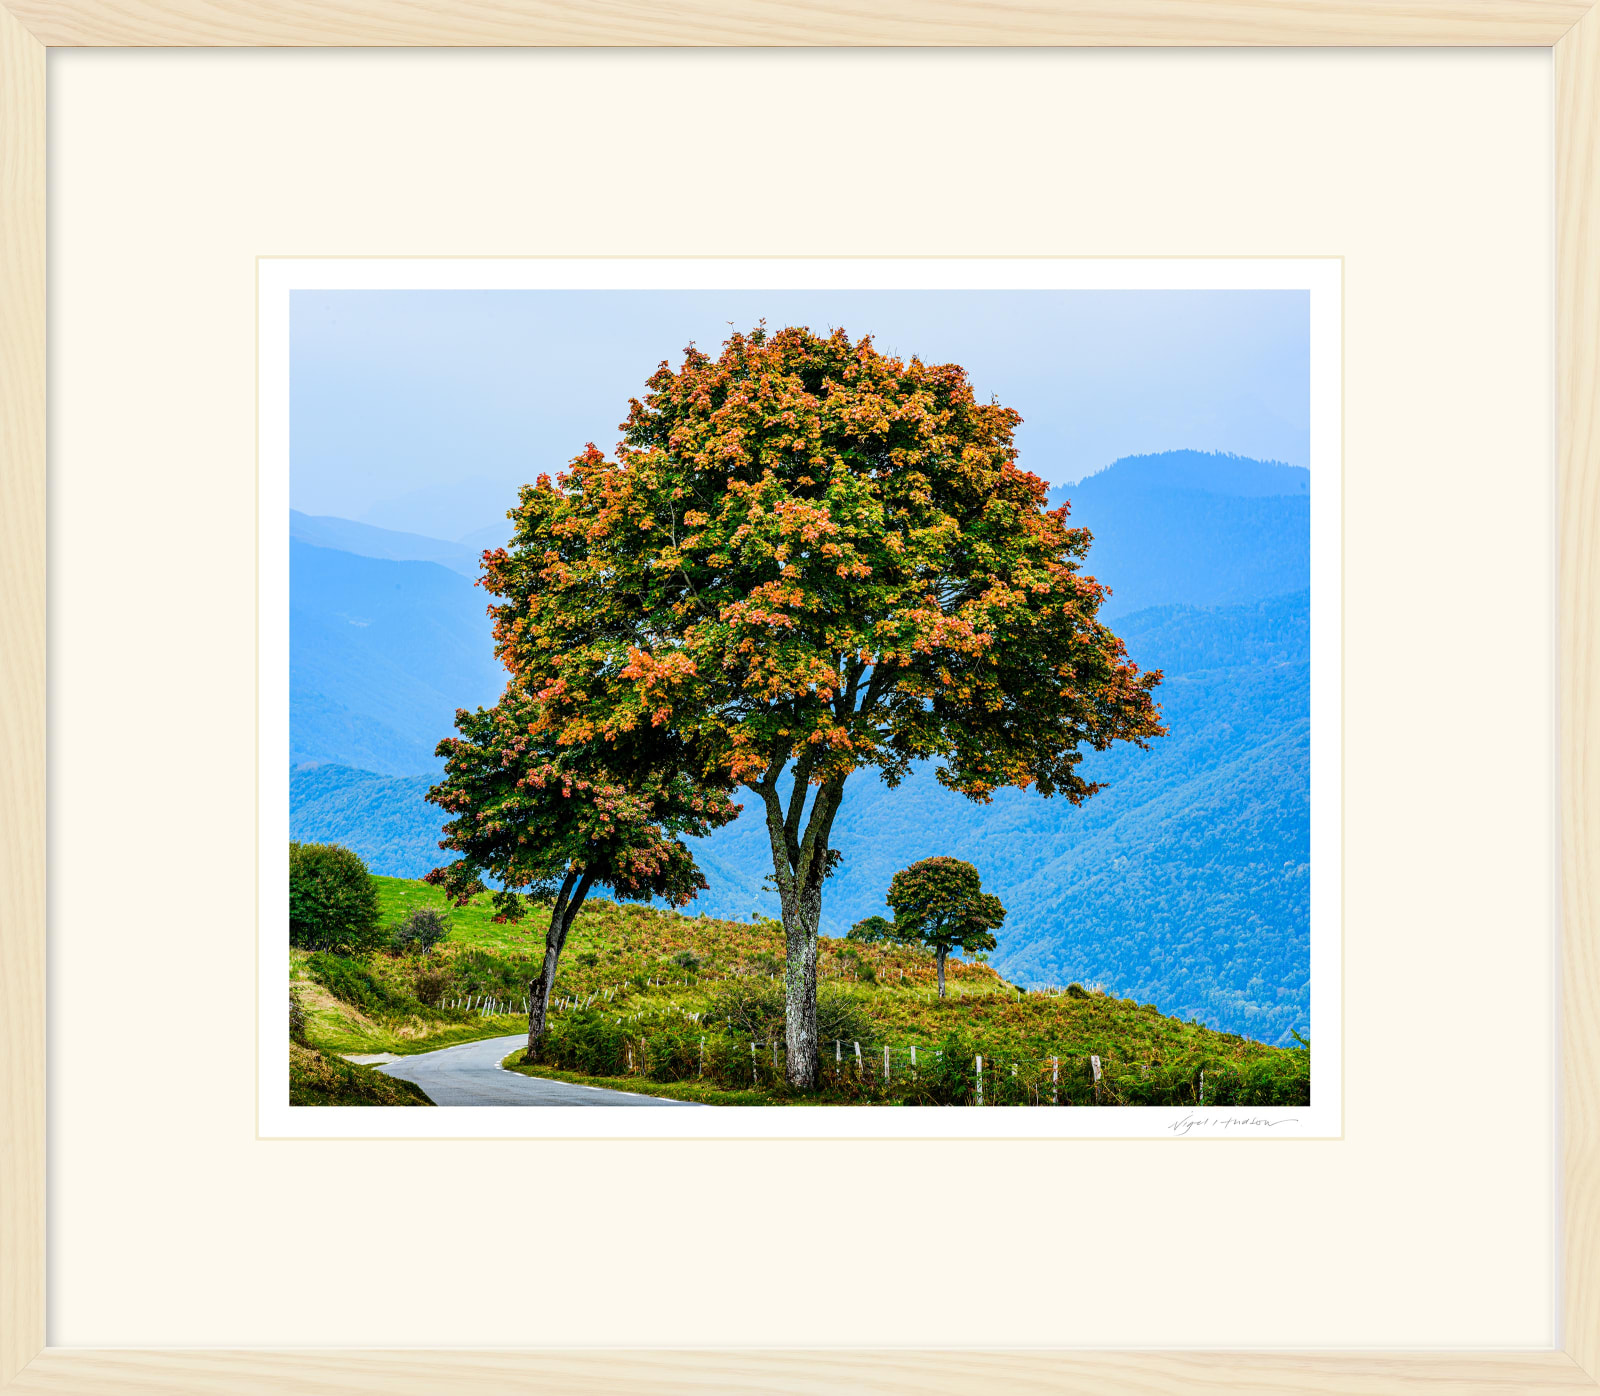 'THREE TREES' Archival Pigment Print on Platinum Etching Fine Art Paper. Framed in an Limed Ash Cushion Frame and protected with crystal clear Water White Glass. Available in an edition of 3 in three sizes. Prices from £245.00 including first class courier delivery within five working days.